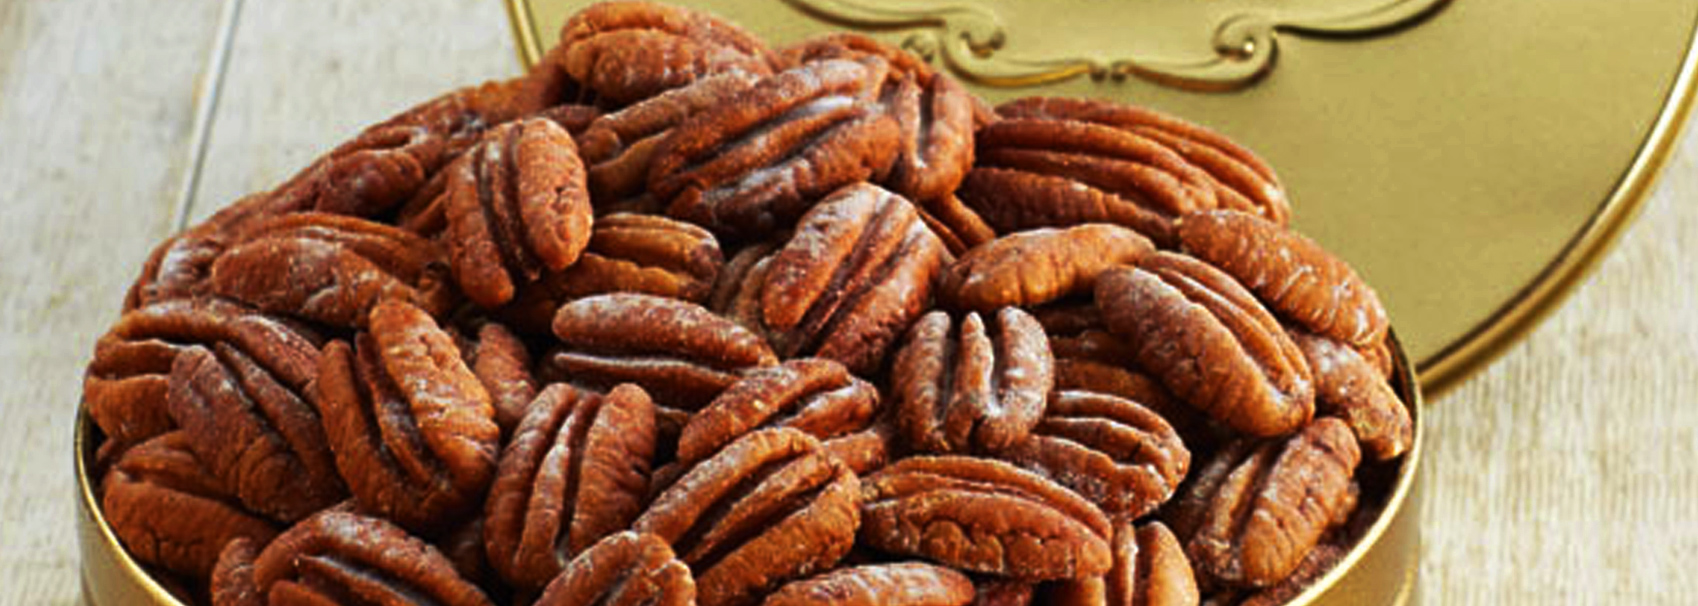 Roasted to perfection and lightly salted – the best pecans in the South!